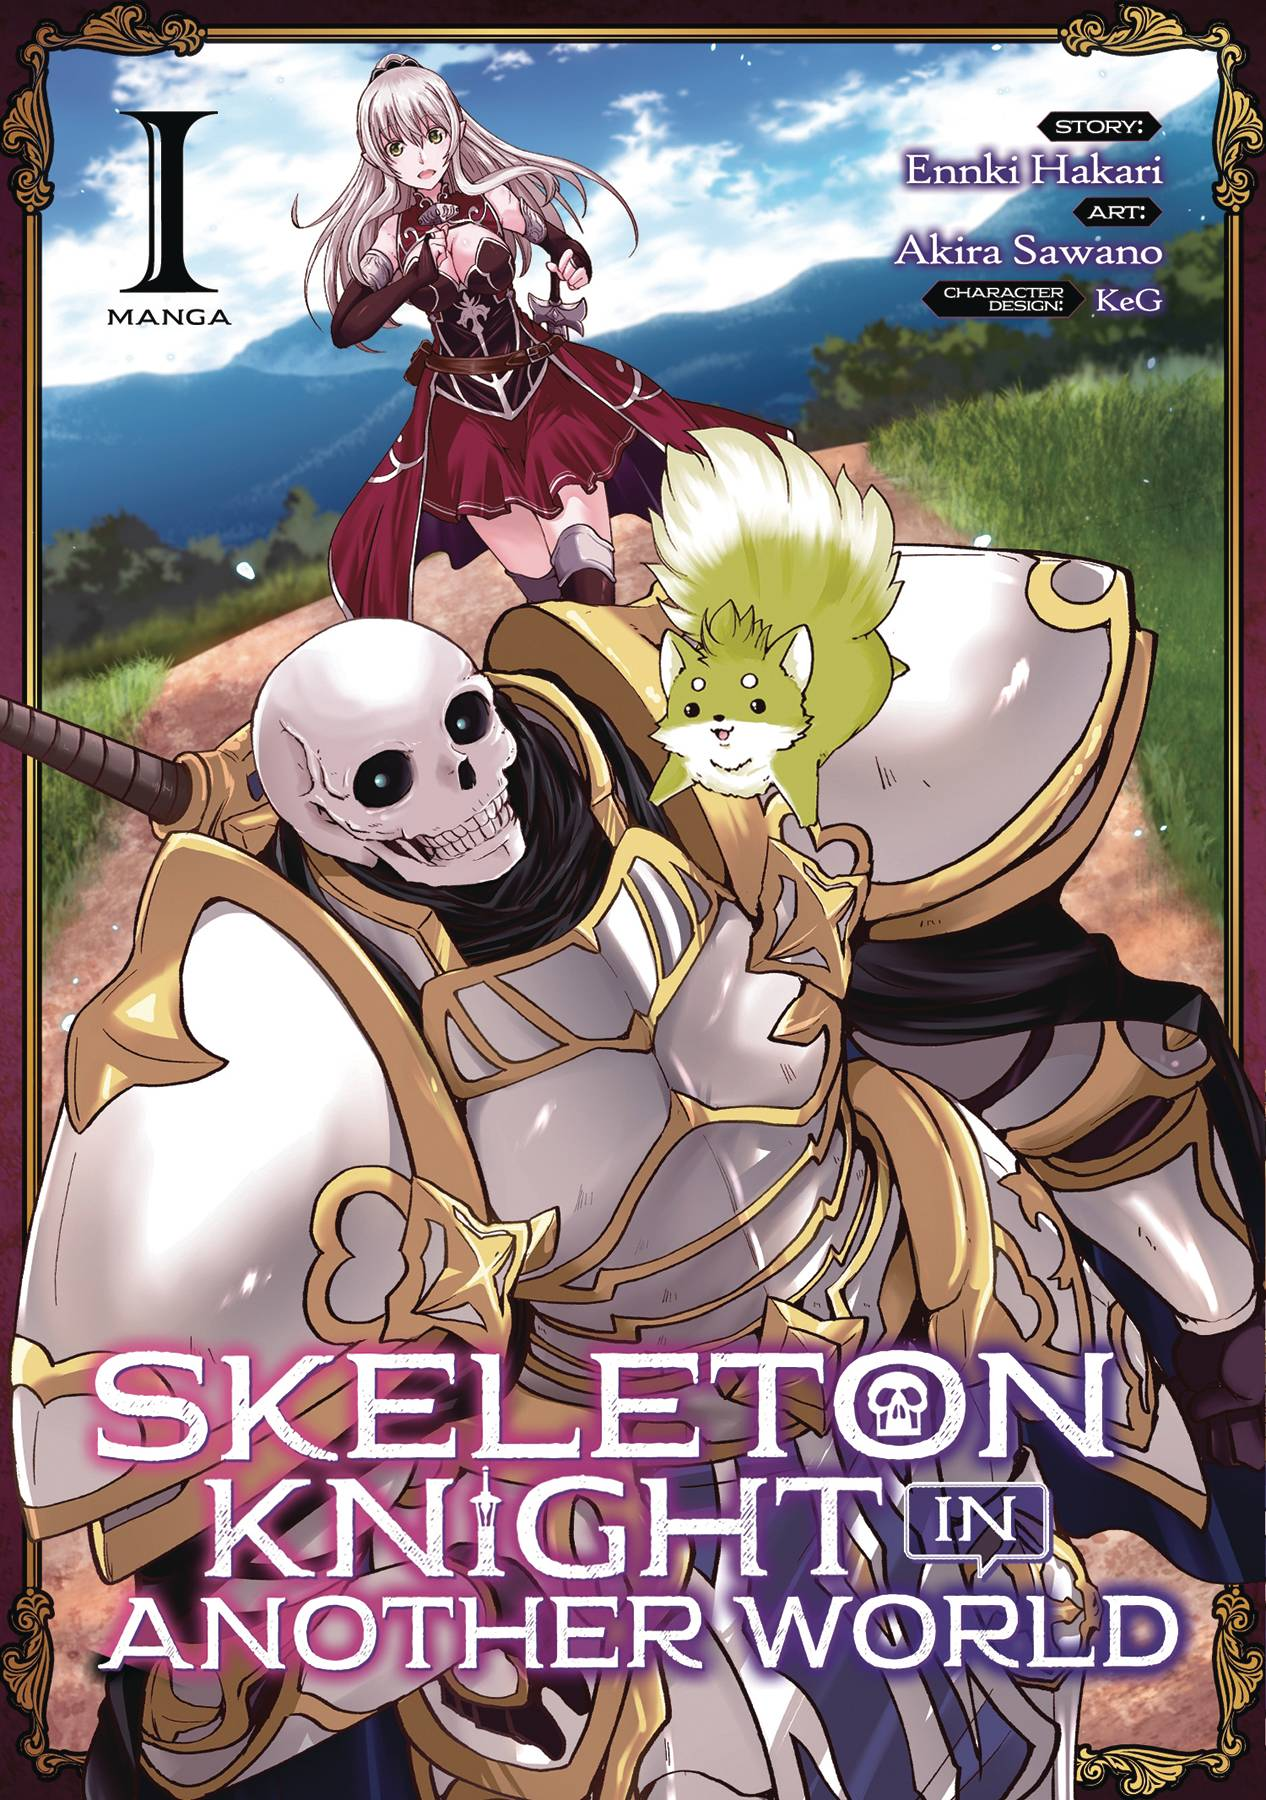 SKELETON KNIGHT IN ANOTHER WORLD GN VOL 01